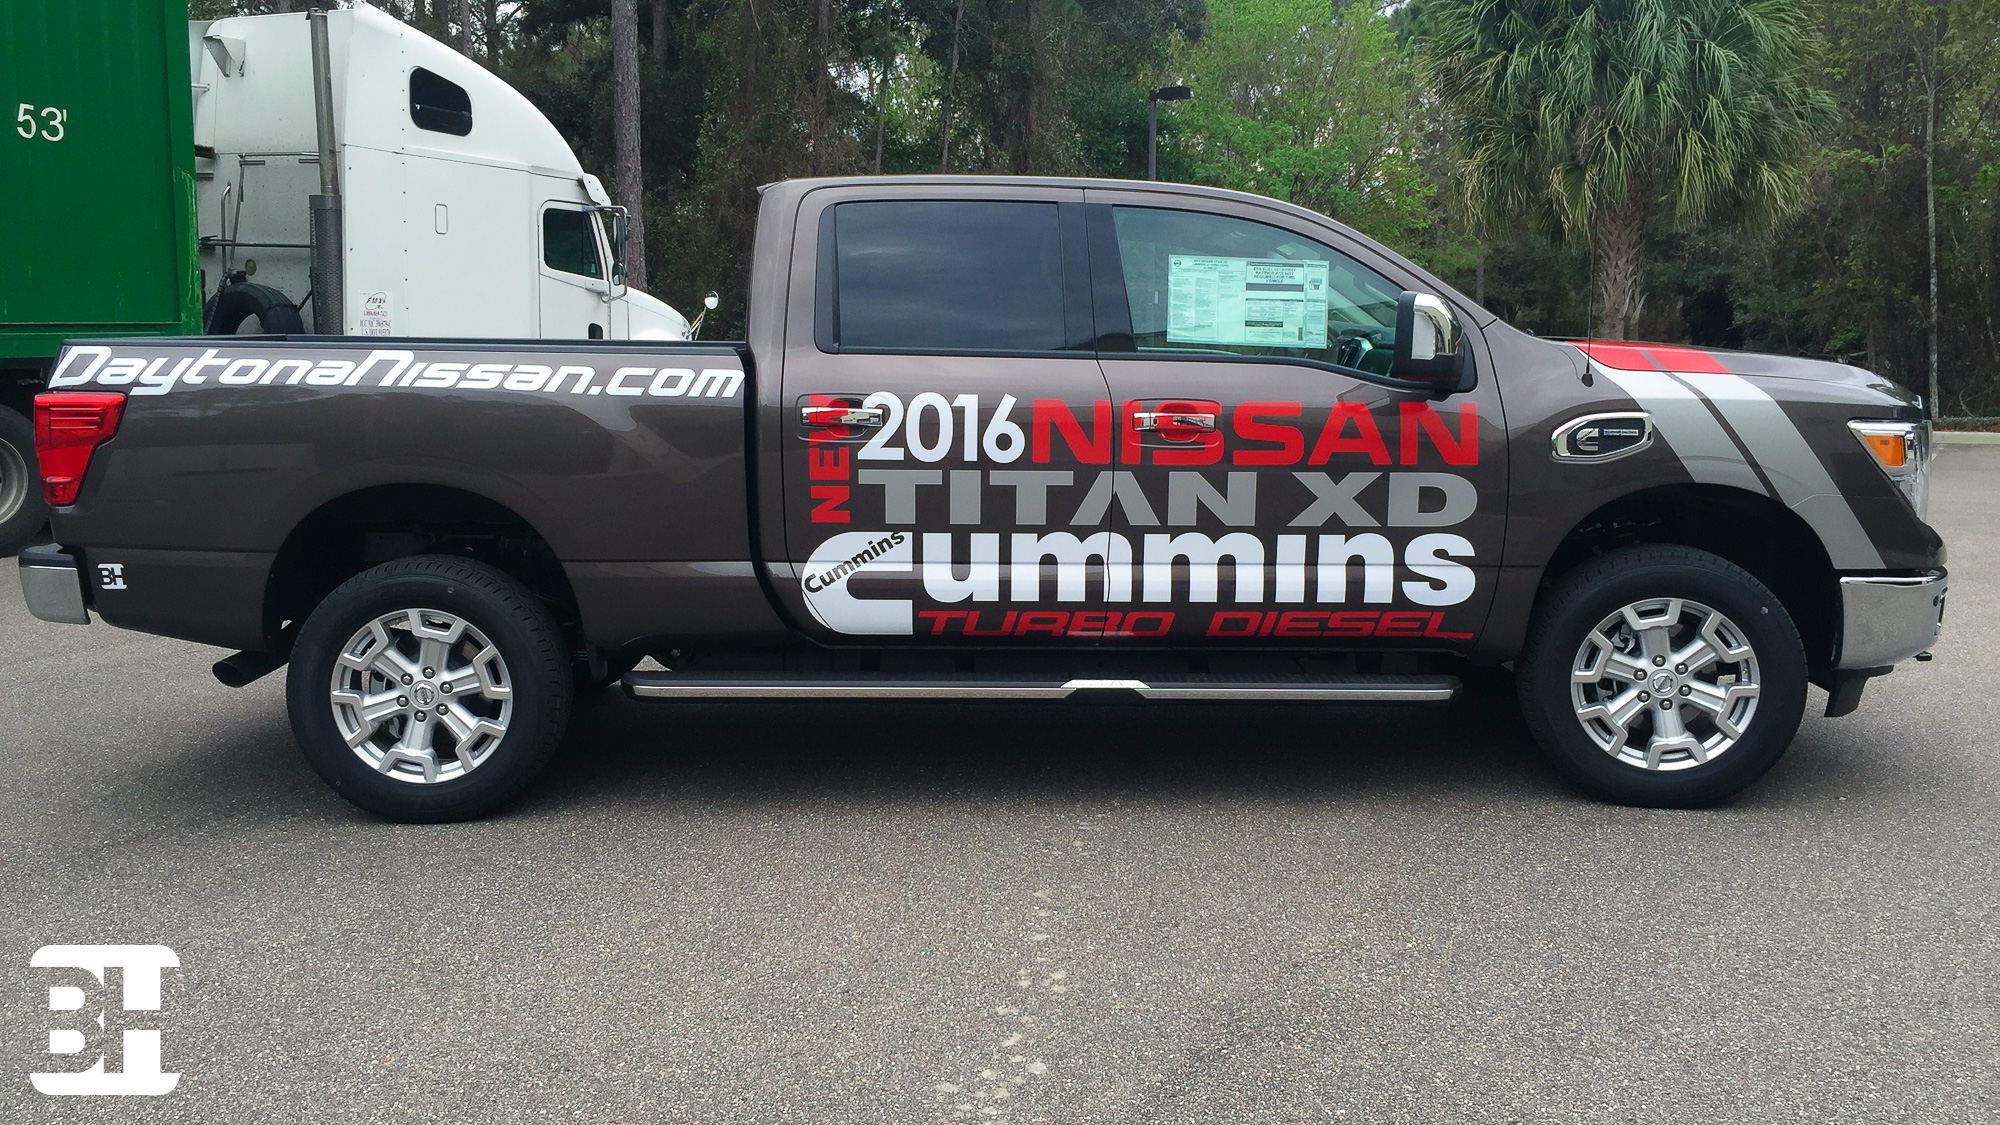 Decals, and vinyl stickers to advertising for the dealership